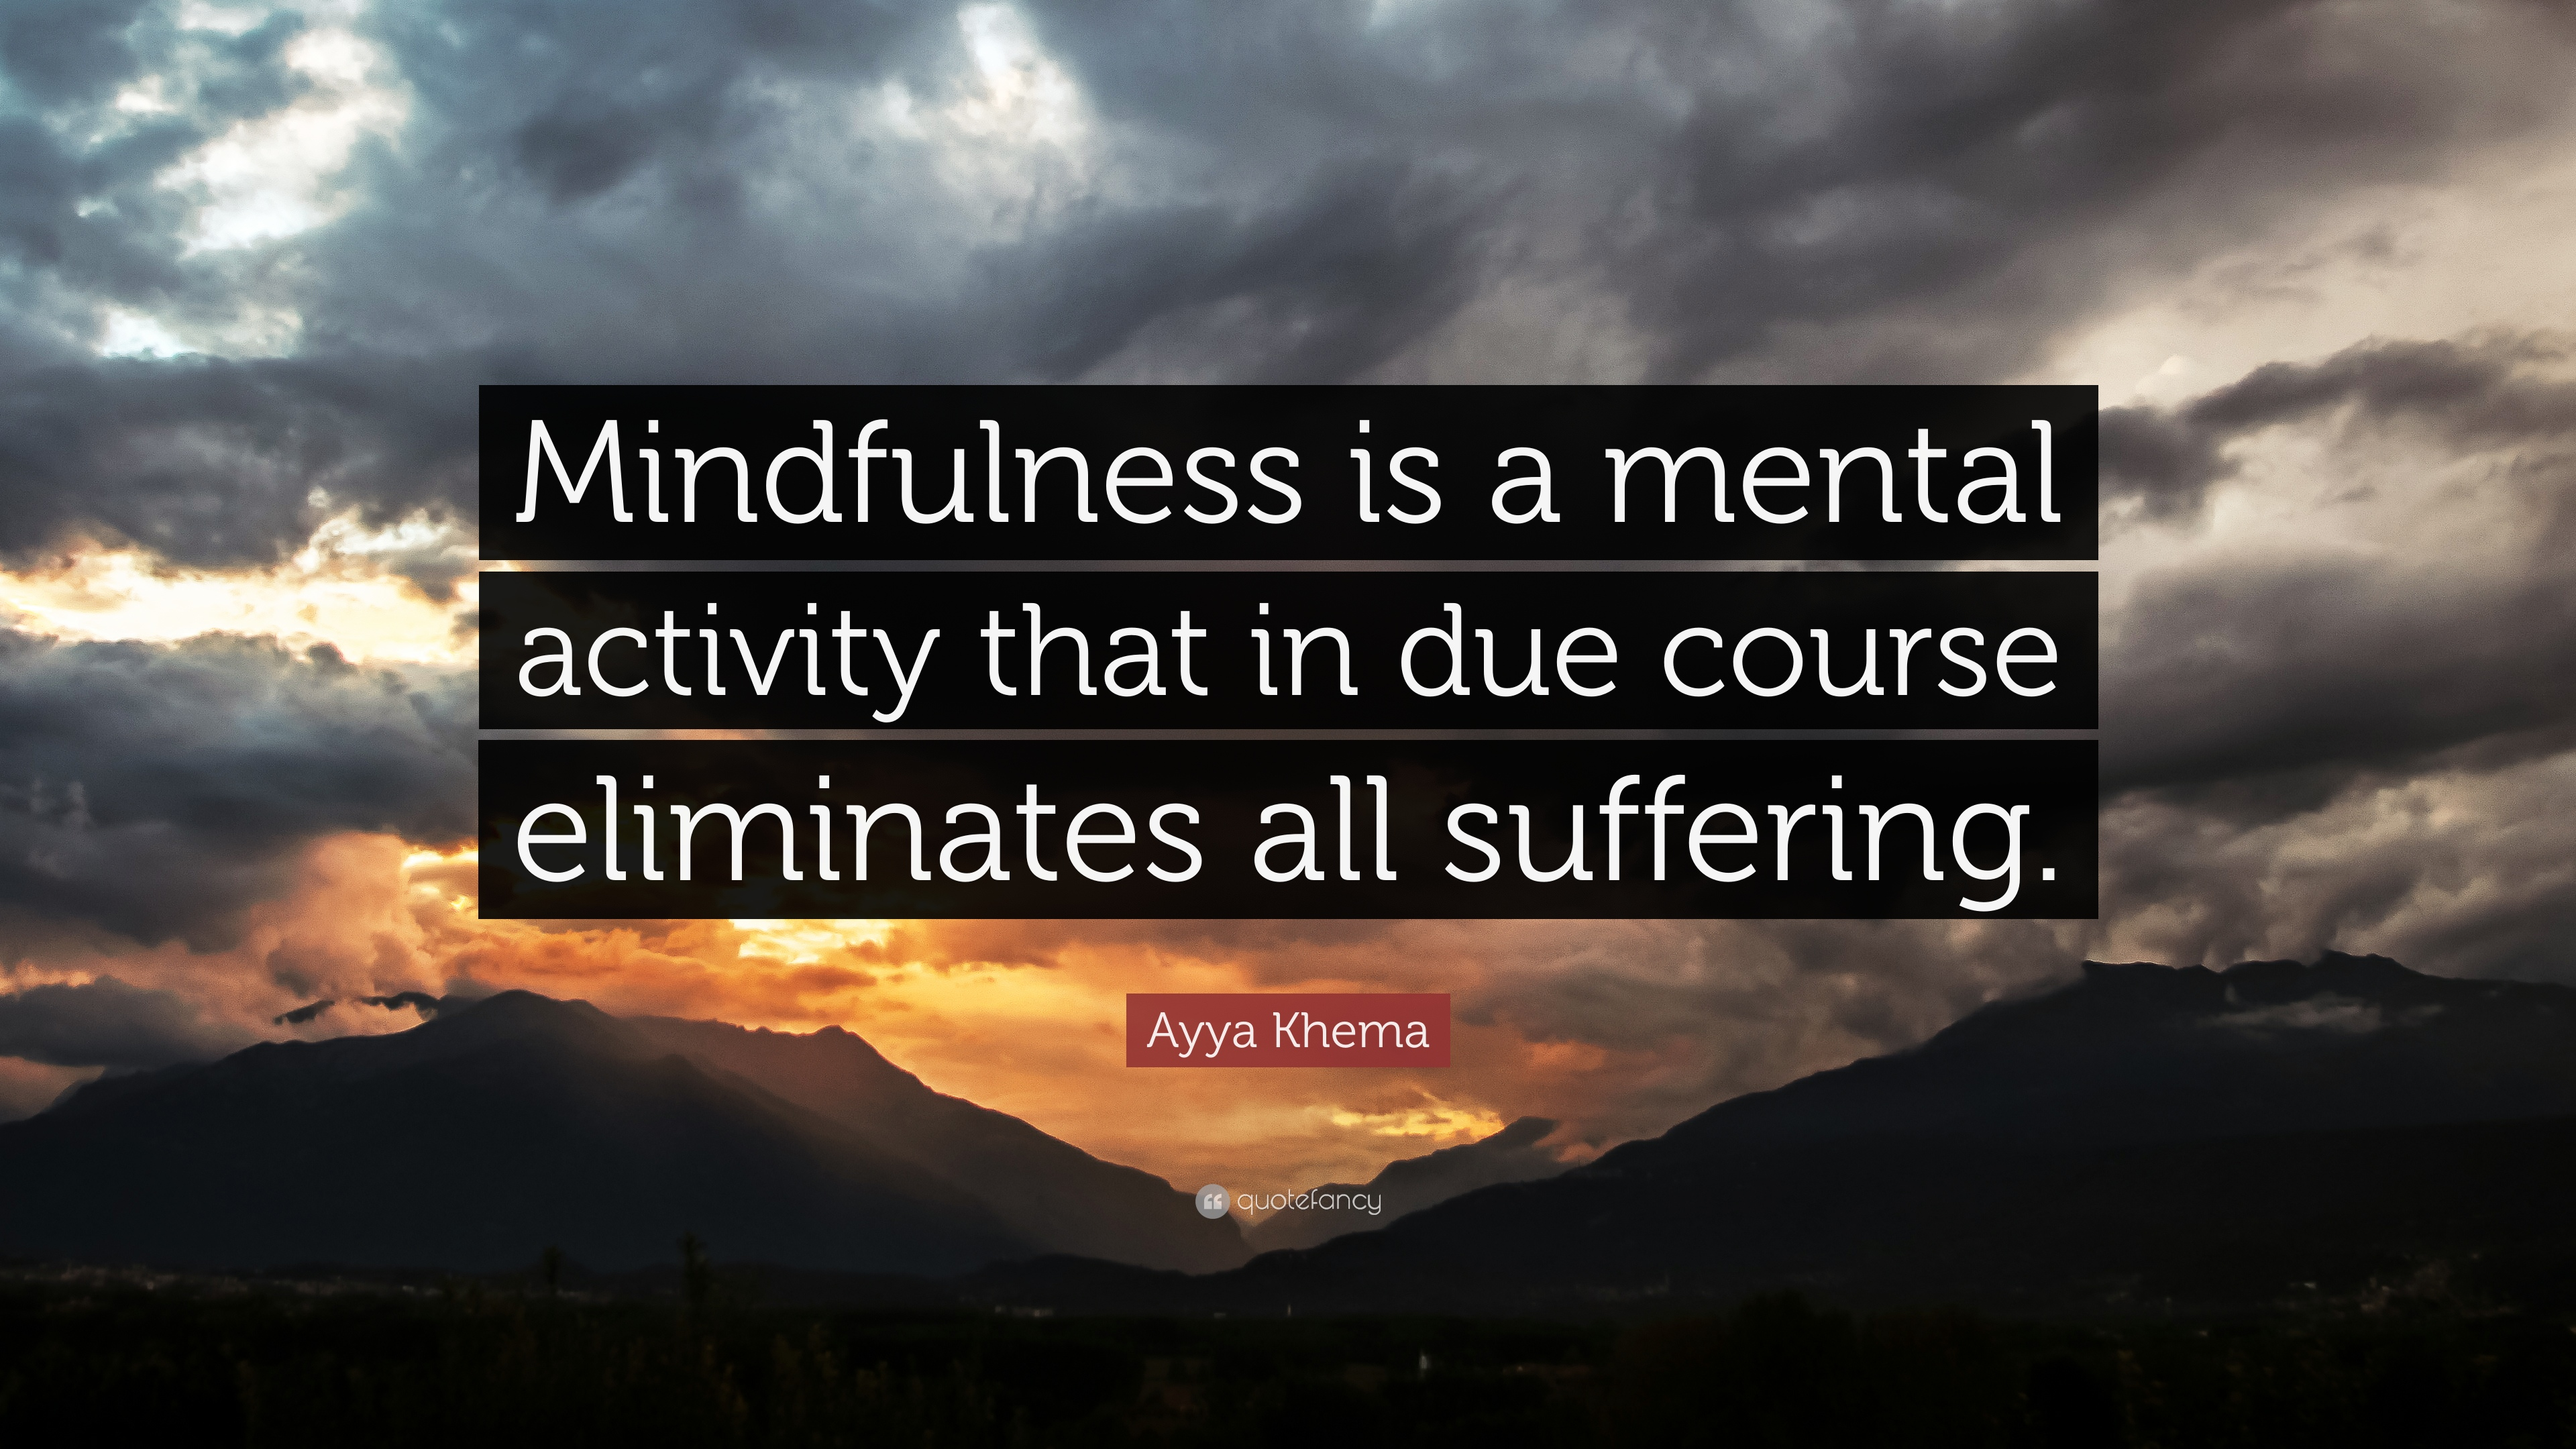 Quotes About Mindfulness Entrancing Ayya Khema Quotes 14 Wallpapers  Quotefancy